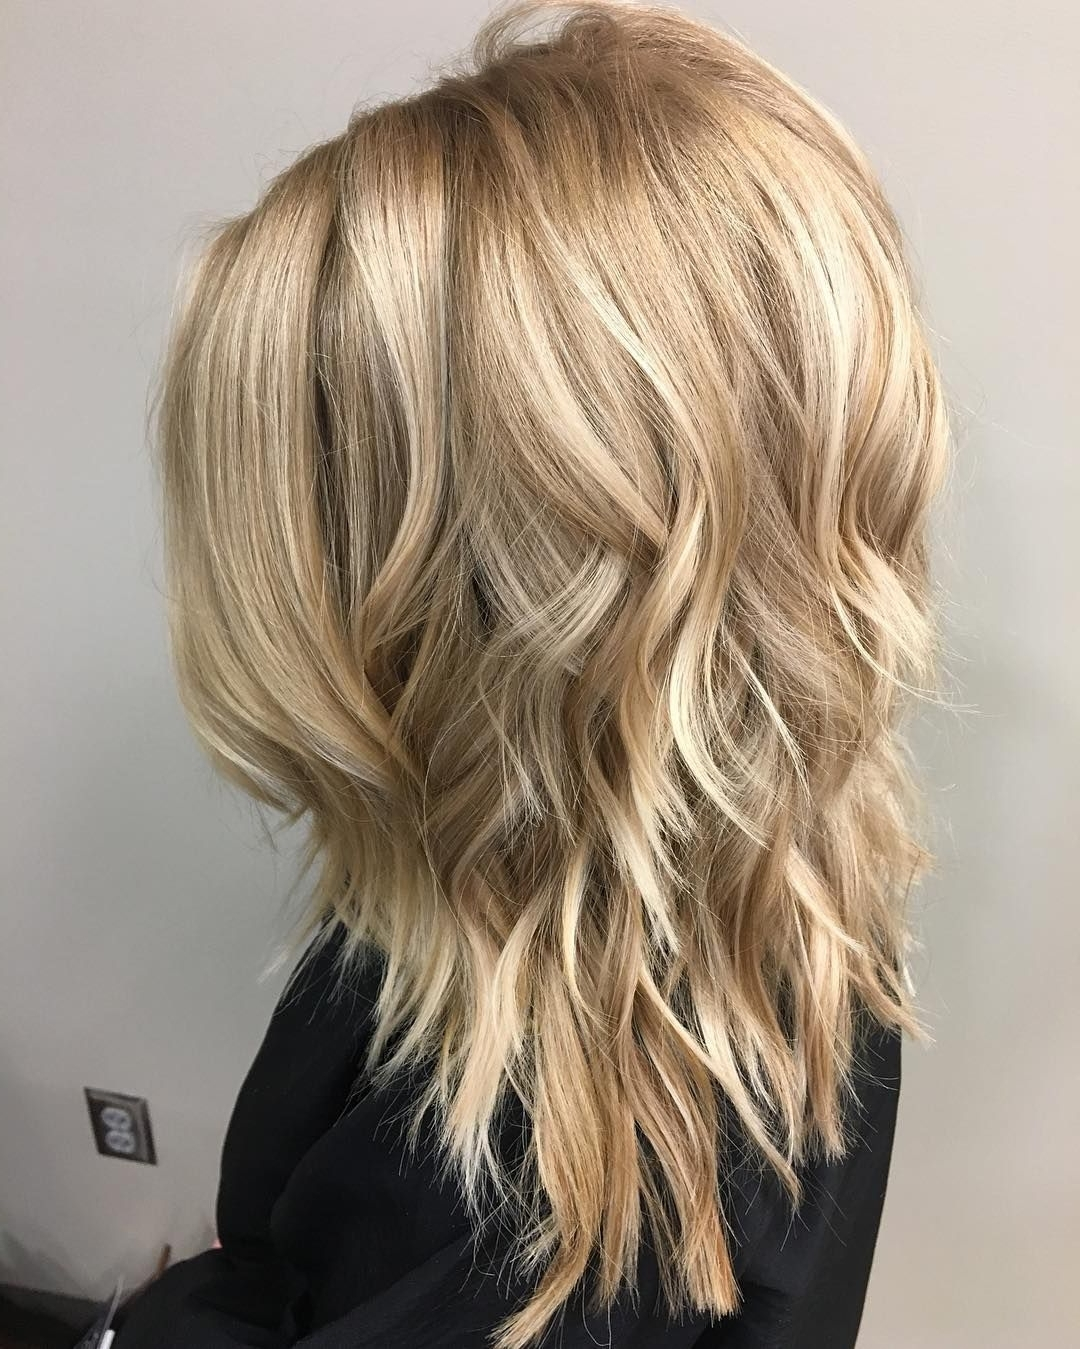 Cool 75 Best Medium Layered Haircuts – Game Changing Layers For 2017 Inside Most Recent Fresh And Flirty Layered Blonde Hairstyles (View 10 of 20)